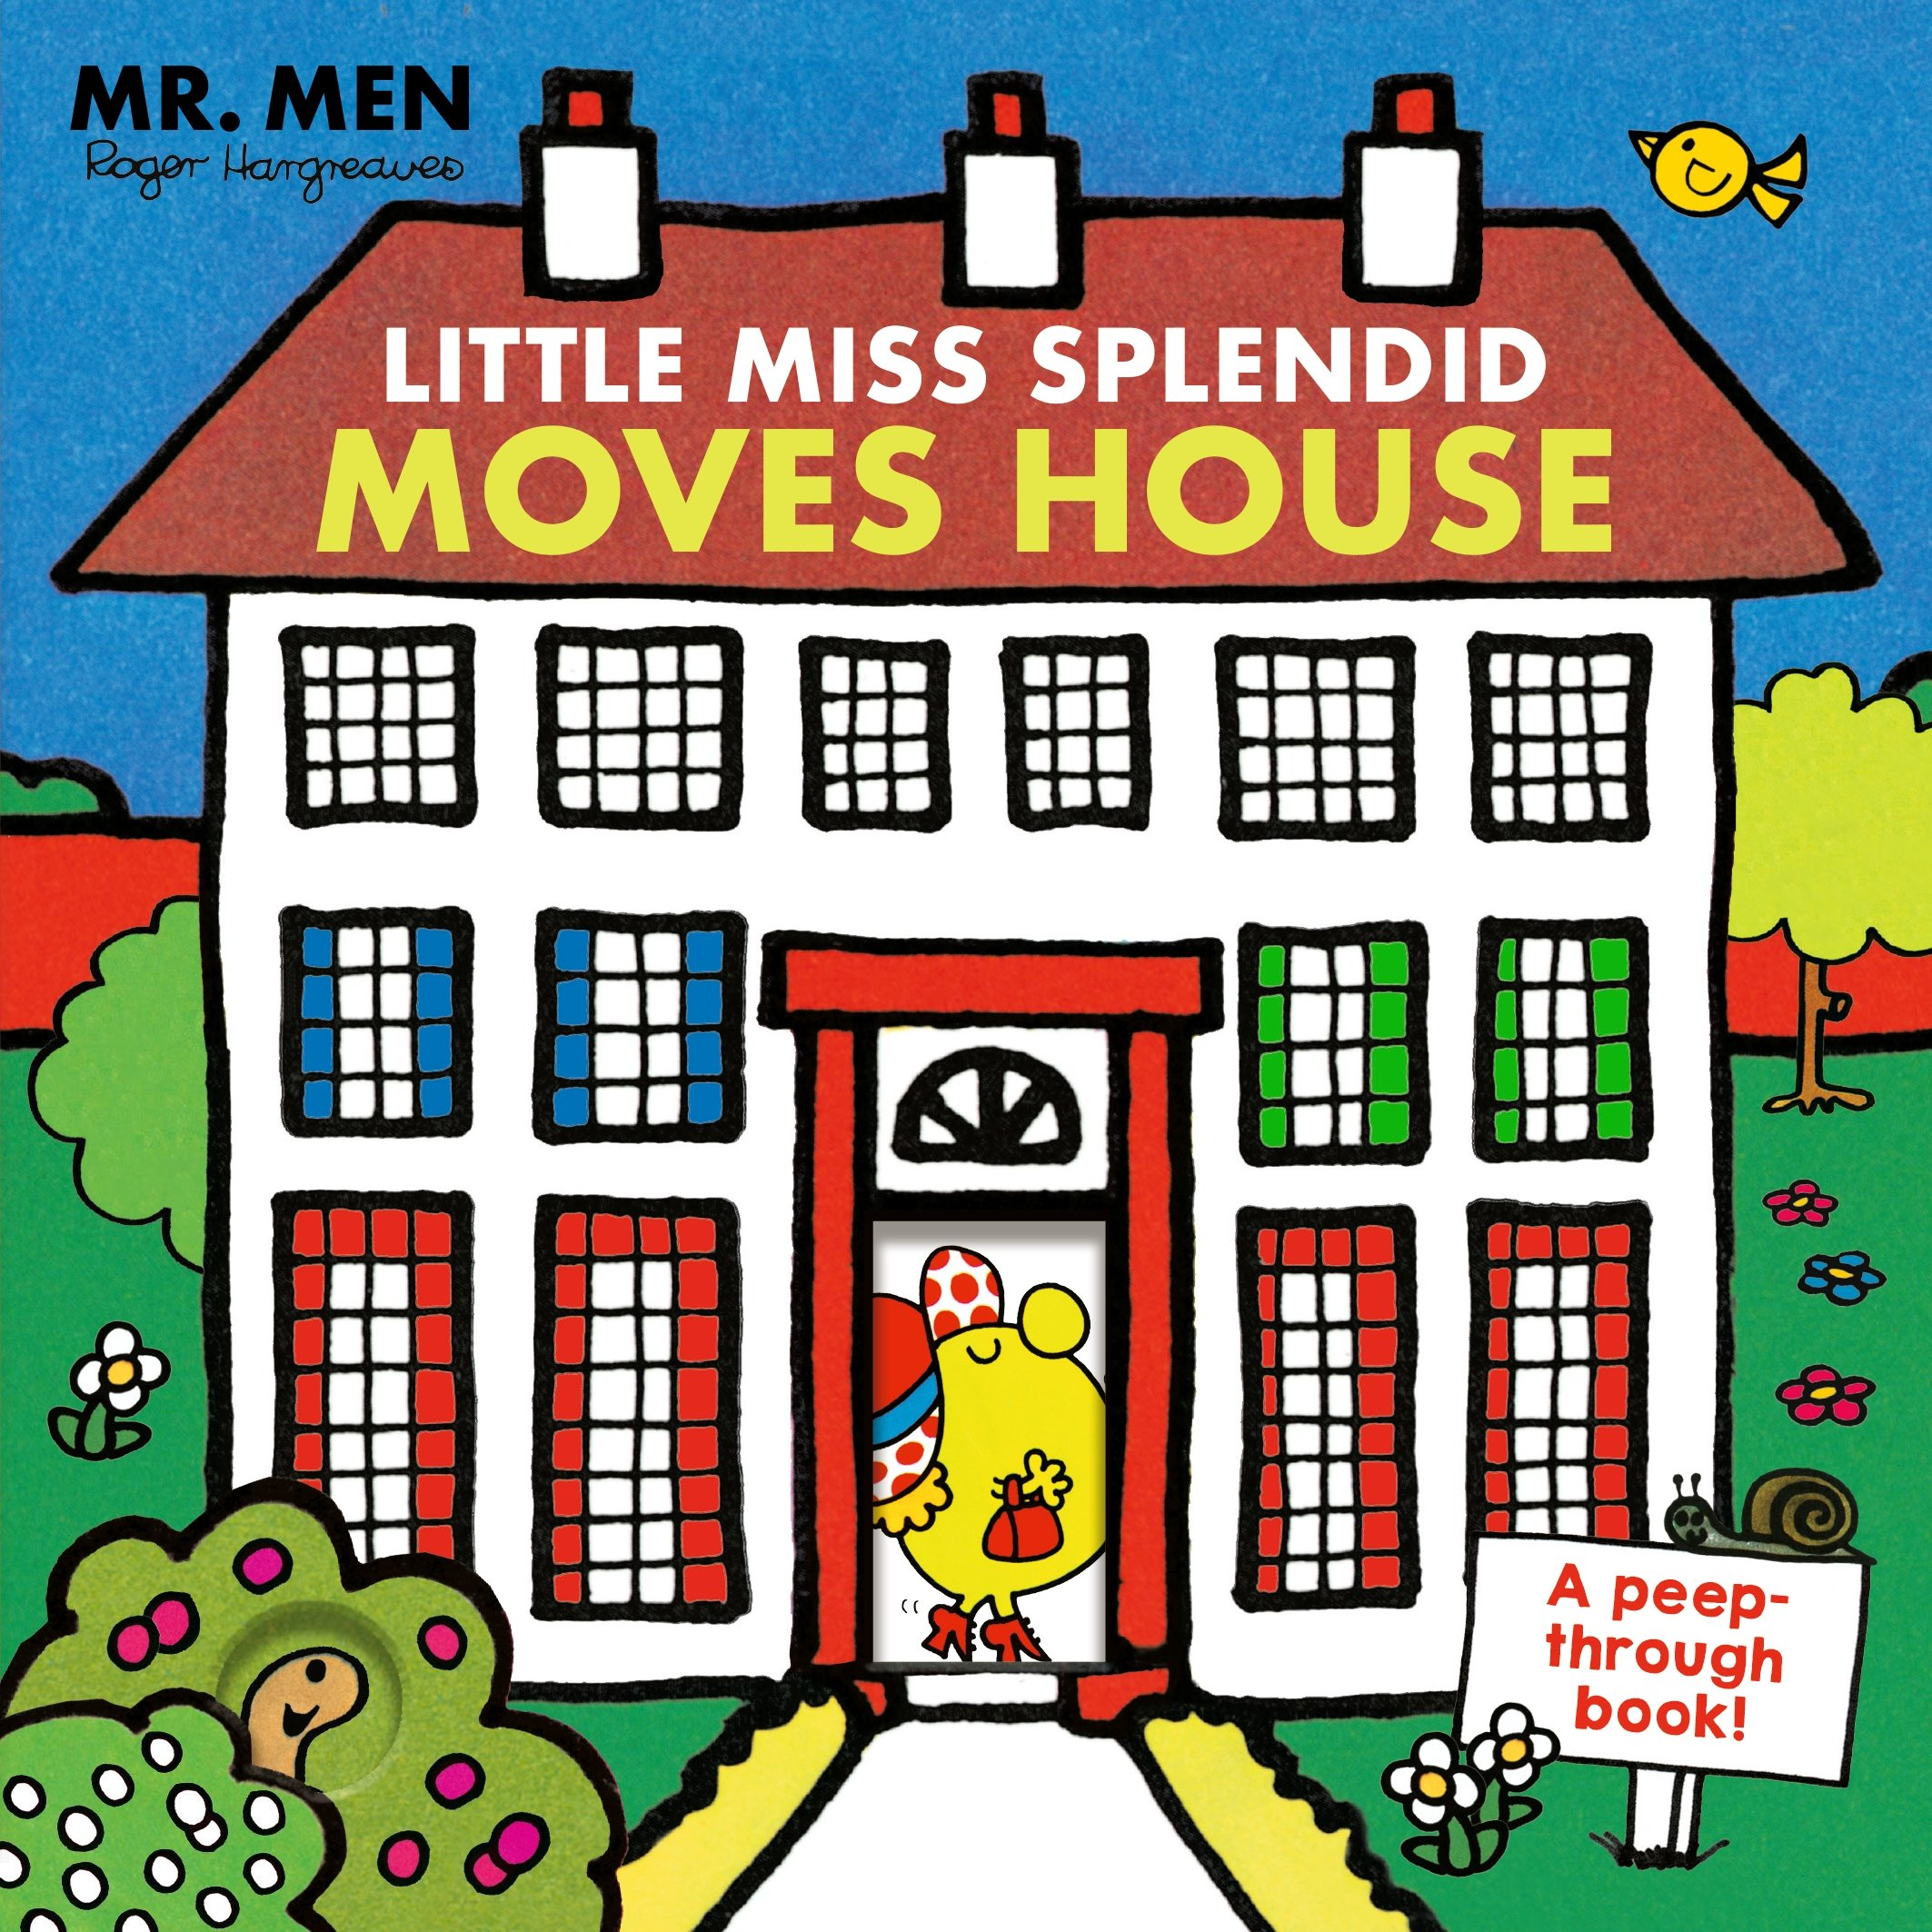 Mr. Men: Little Miss Splendid Moves House (A peep-through book)